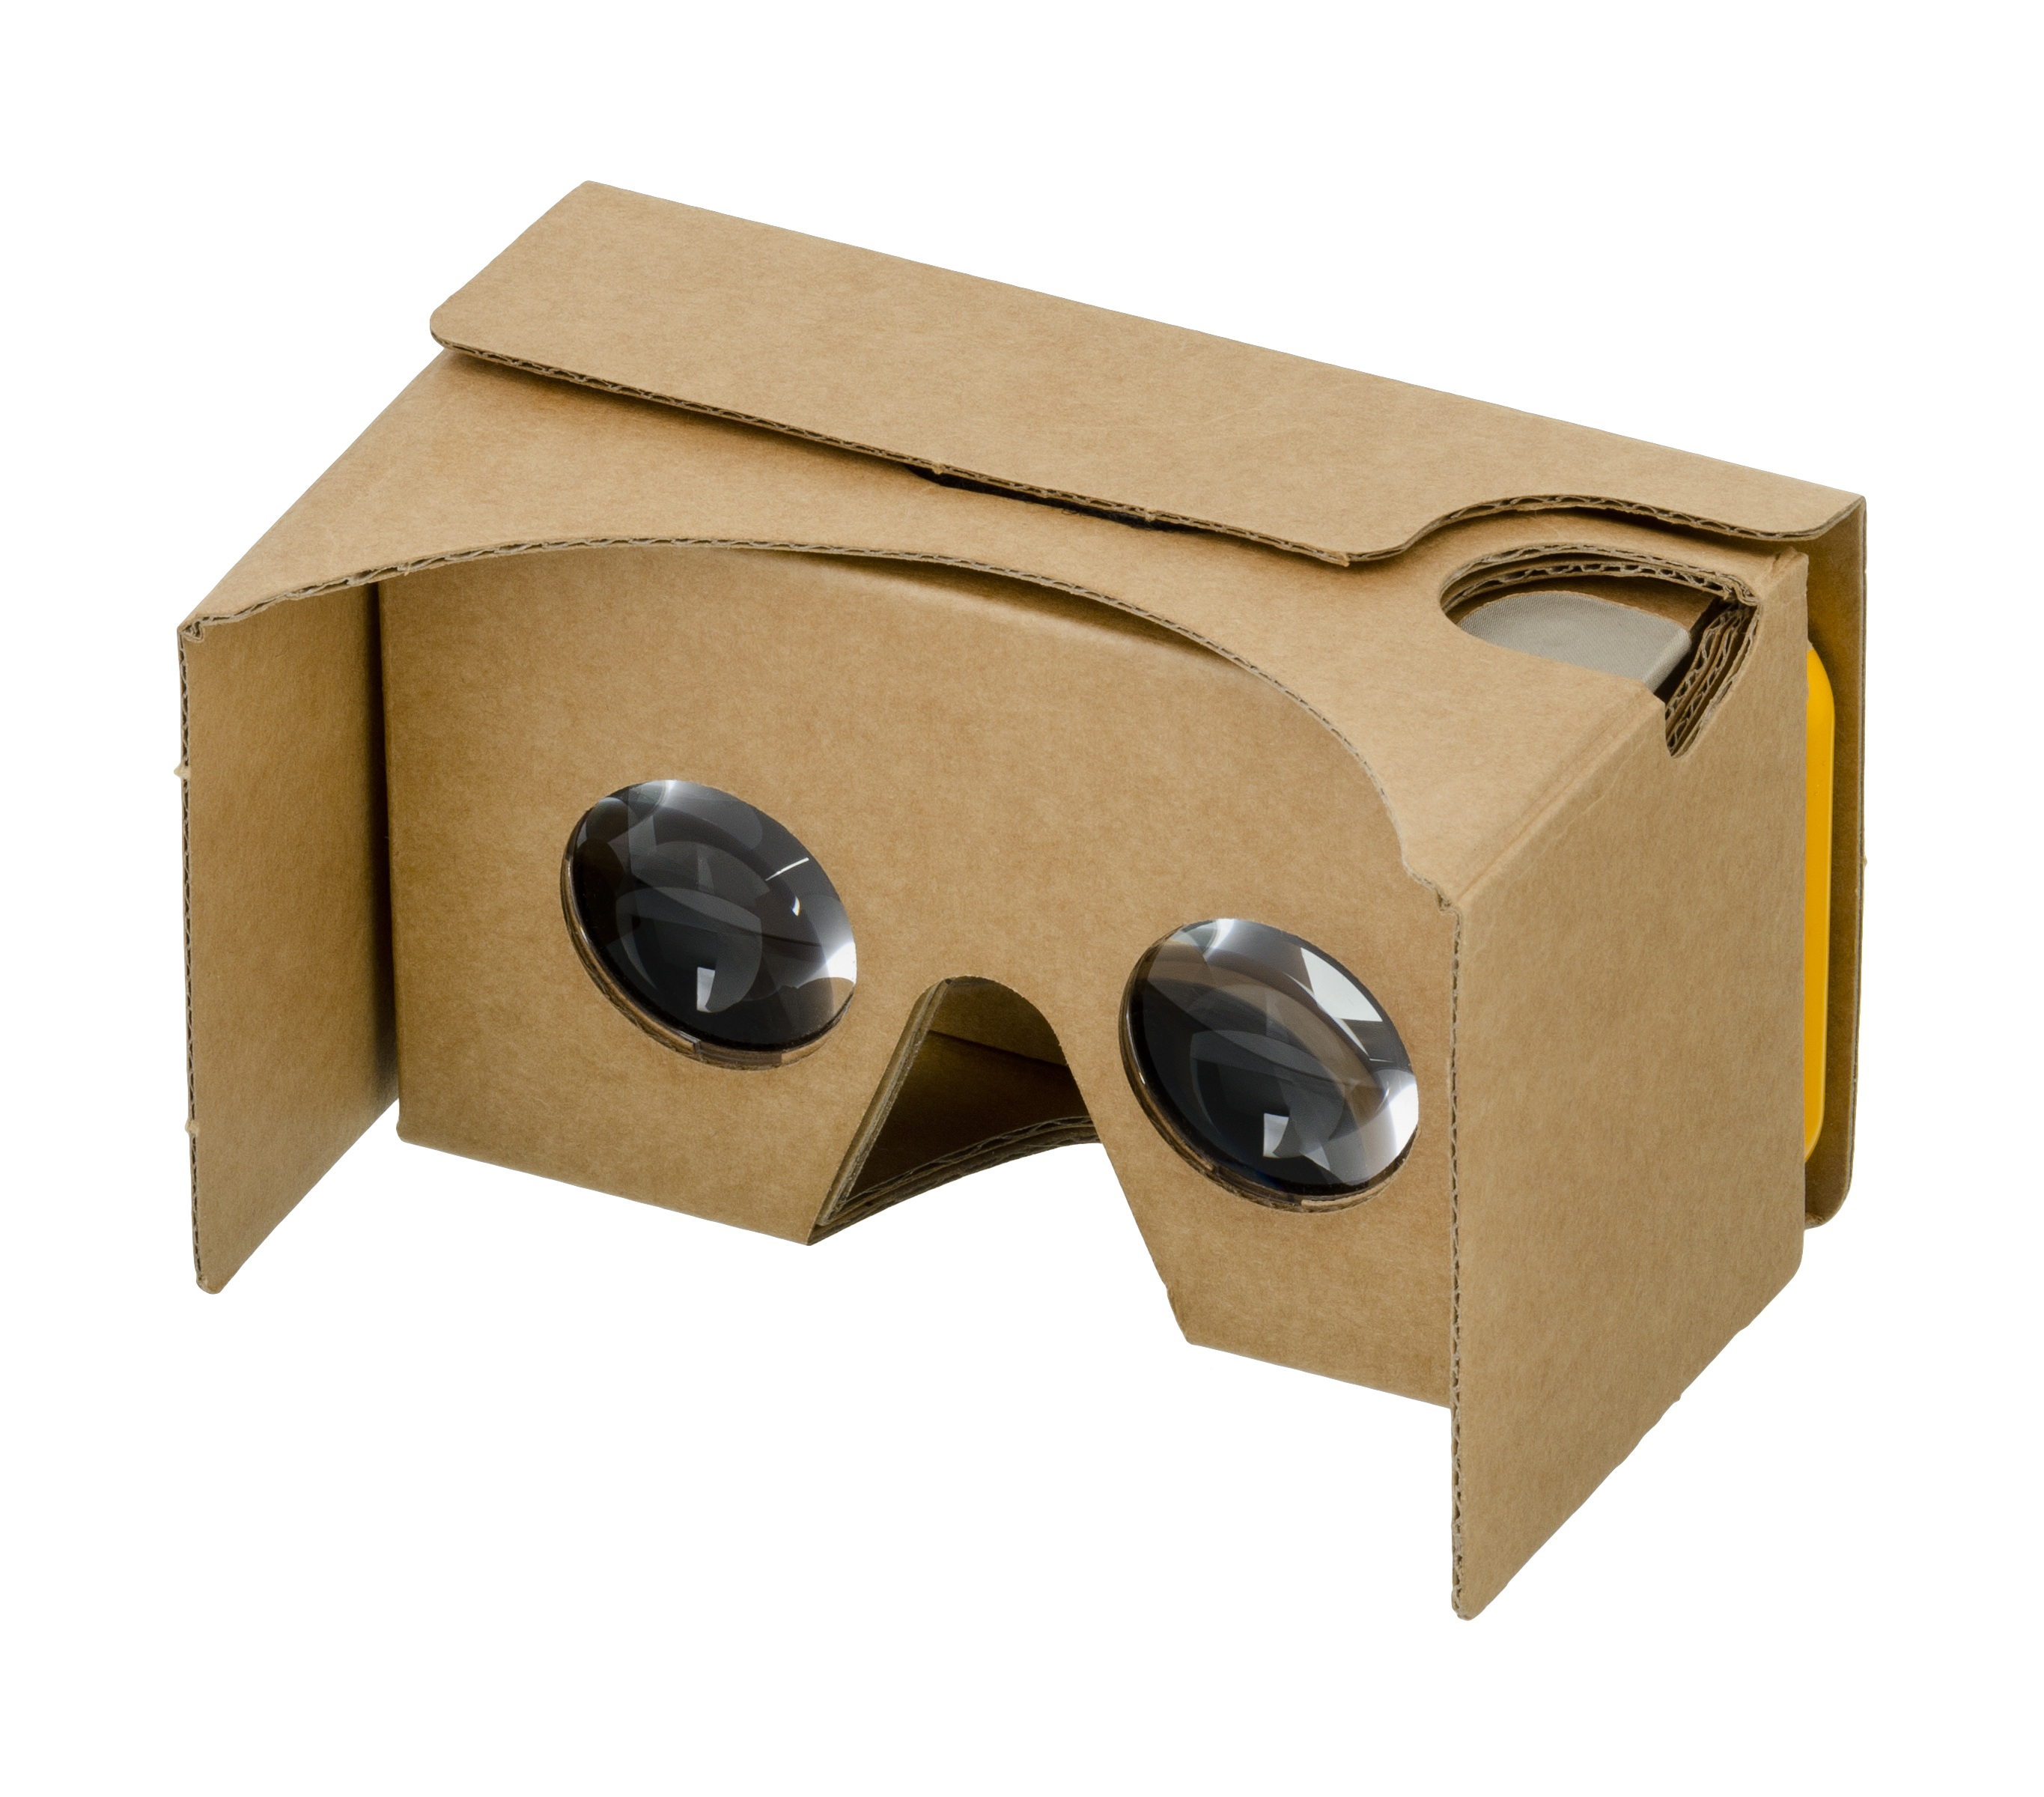 Teen Tech Week: Make Your Own VR Headset